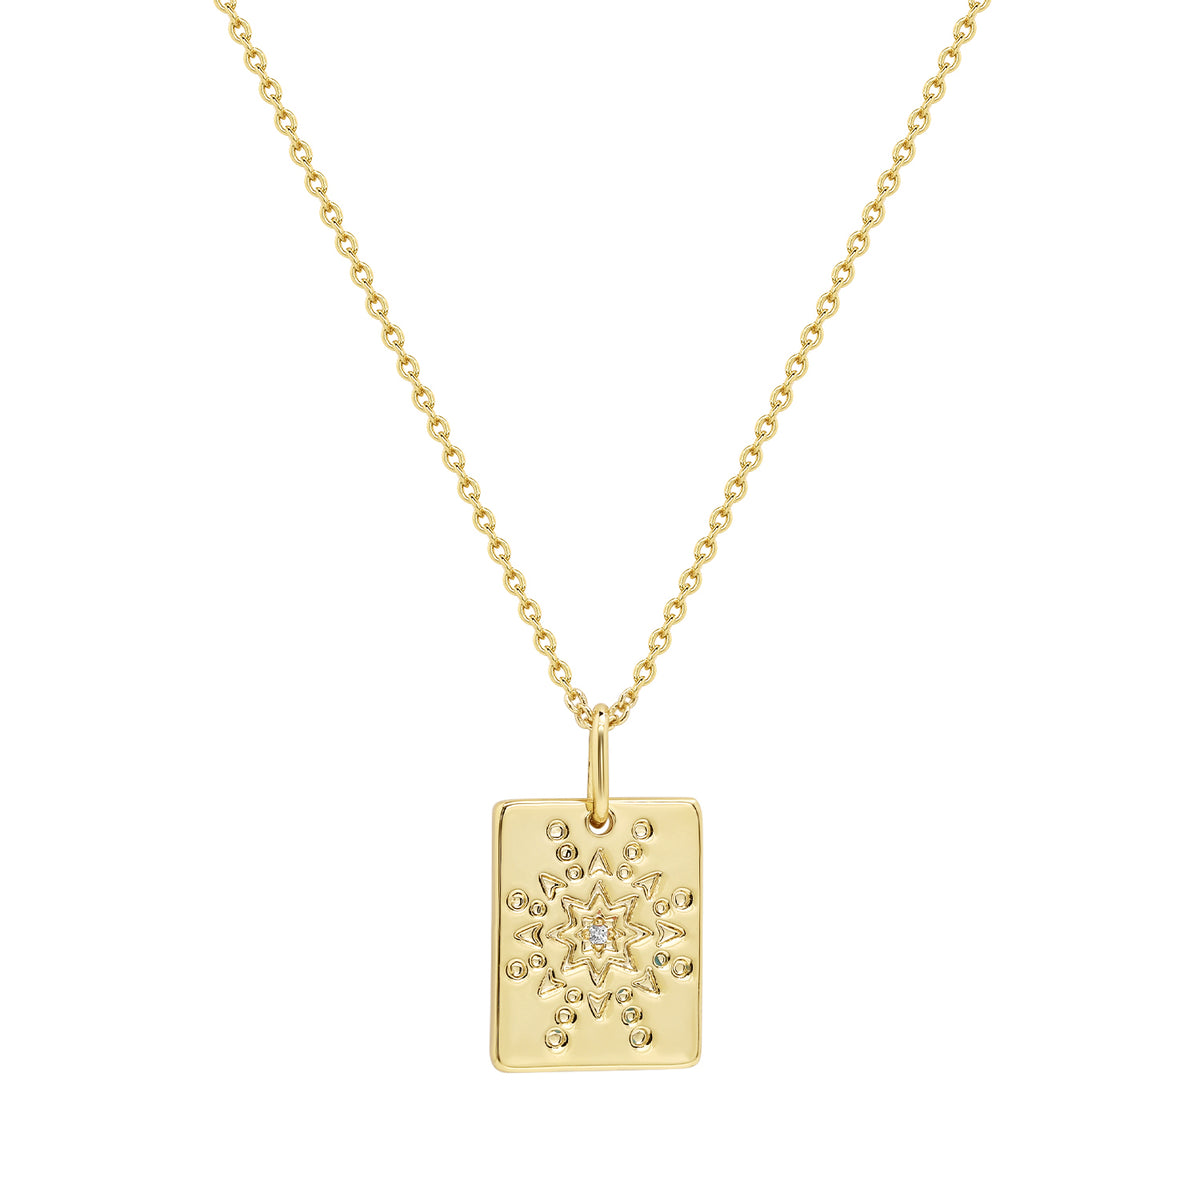 Wish Pendants | Courage & Growth Pendant | White CZ | 14K Gold Plated 925 Silver